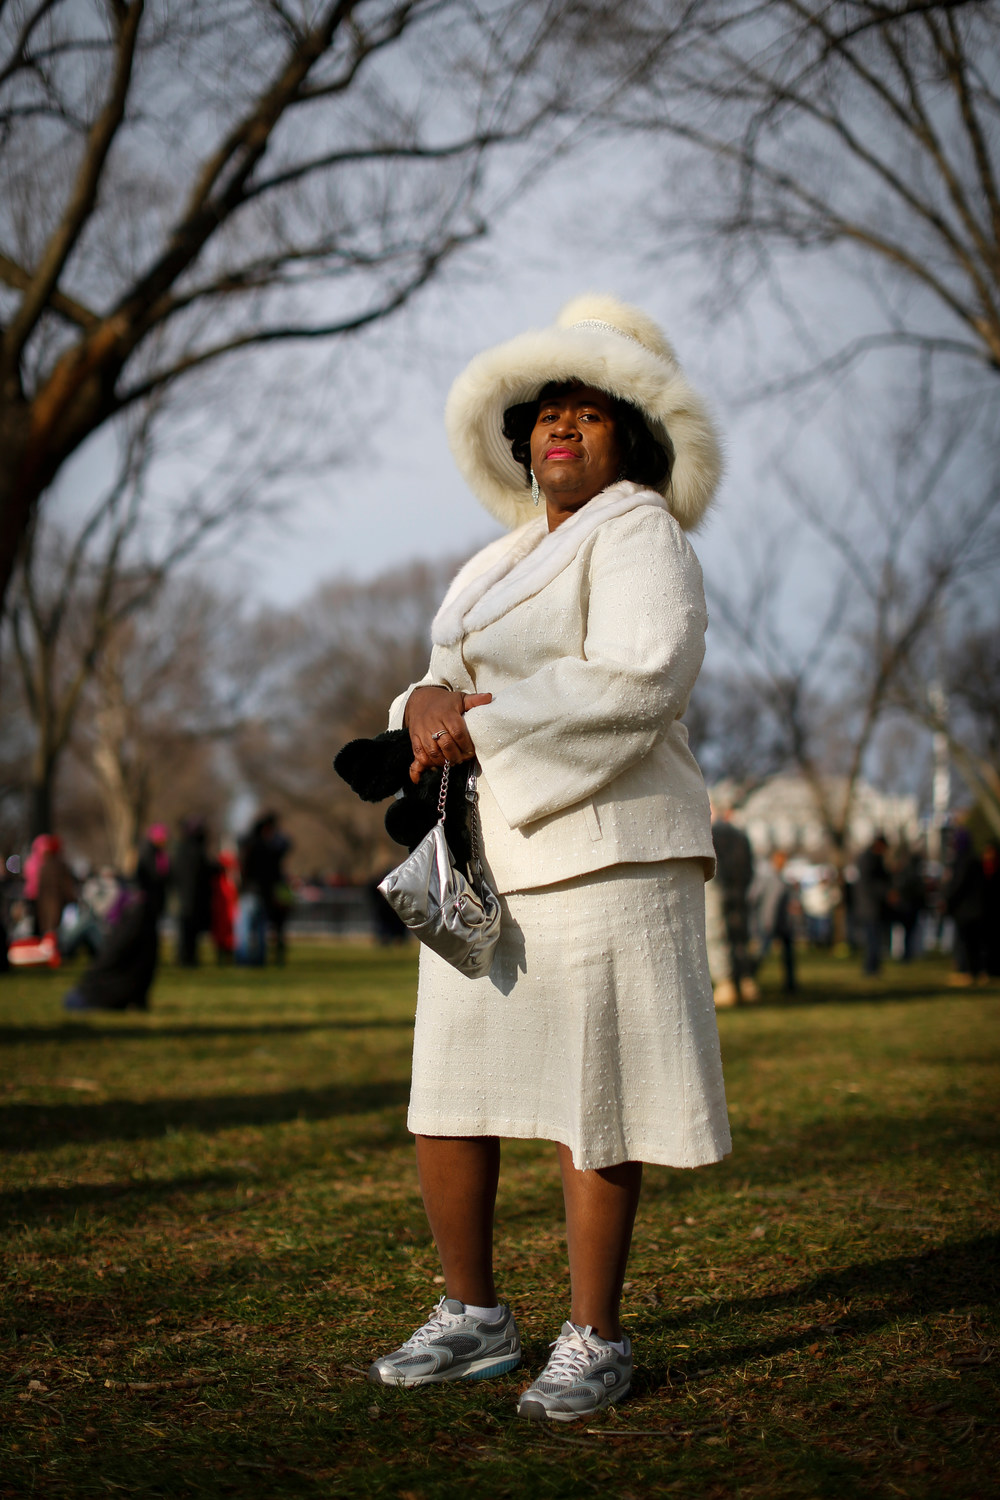 "Katie Chandler, from Jackson Mississippi, came to the National Mall to see President Barack Obama speak at his ceremonial swearing-in at the U.S. Capitol during the 57th Presidential Inauguration in Washington, Jan. 21, 2013. ""I am here to see my president,"" said Chandler. ""He is going to do things that no other president can."" The city of Washington, D.C., estimated around 1 million people attended which was about 55 percent of the 1.8 million estimated people who packed the Mall last time to watch Obama get sworn in for his first term."